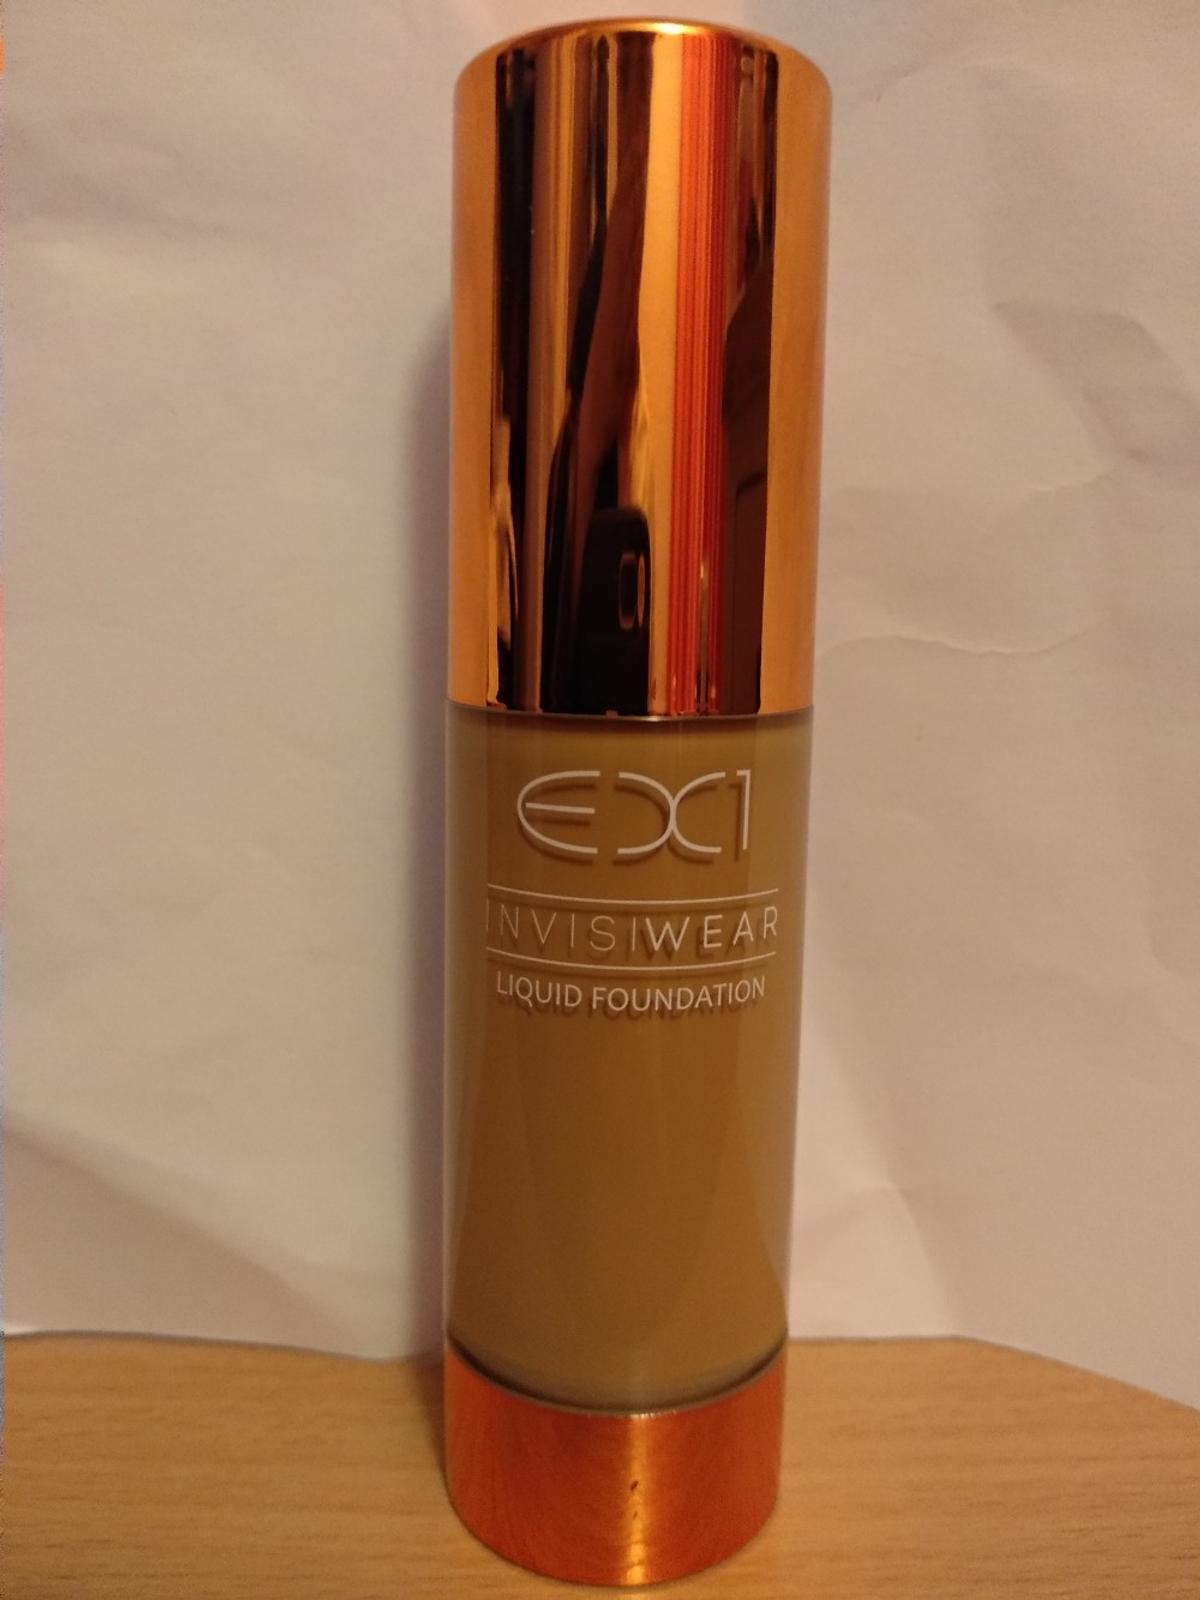 Ex1 Foundation Shade 11 0 In Se27 London For 6 00 For Sale Shpock